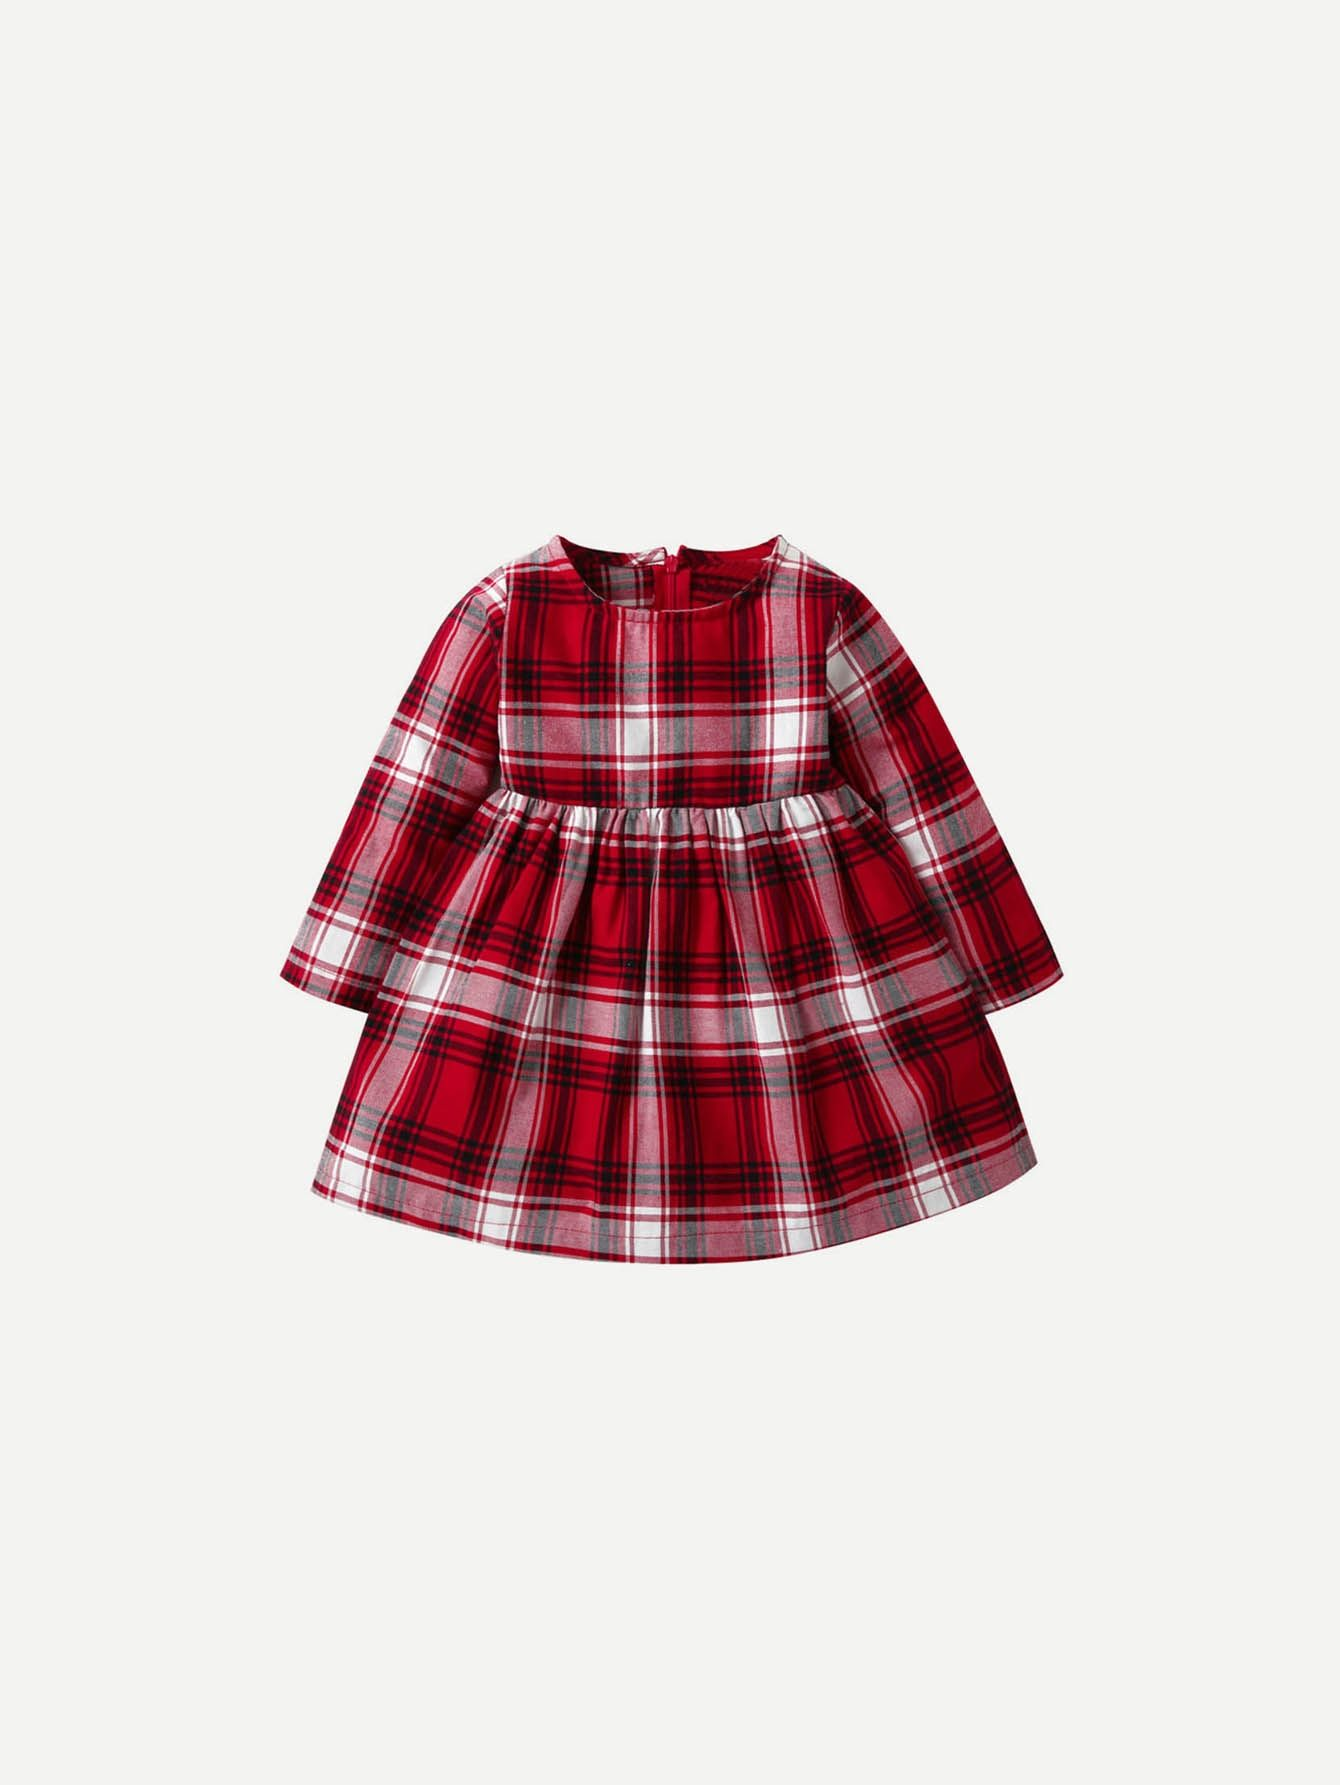 026413aa6e5a SHEIN Girls Plaid Dress Price in Egypt